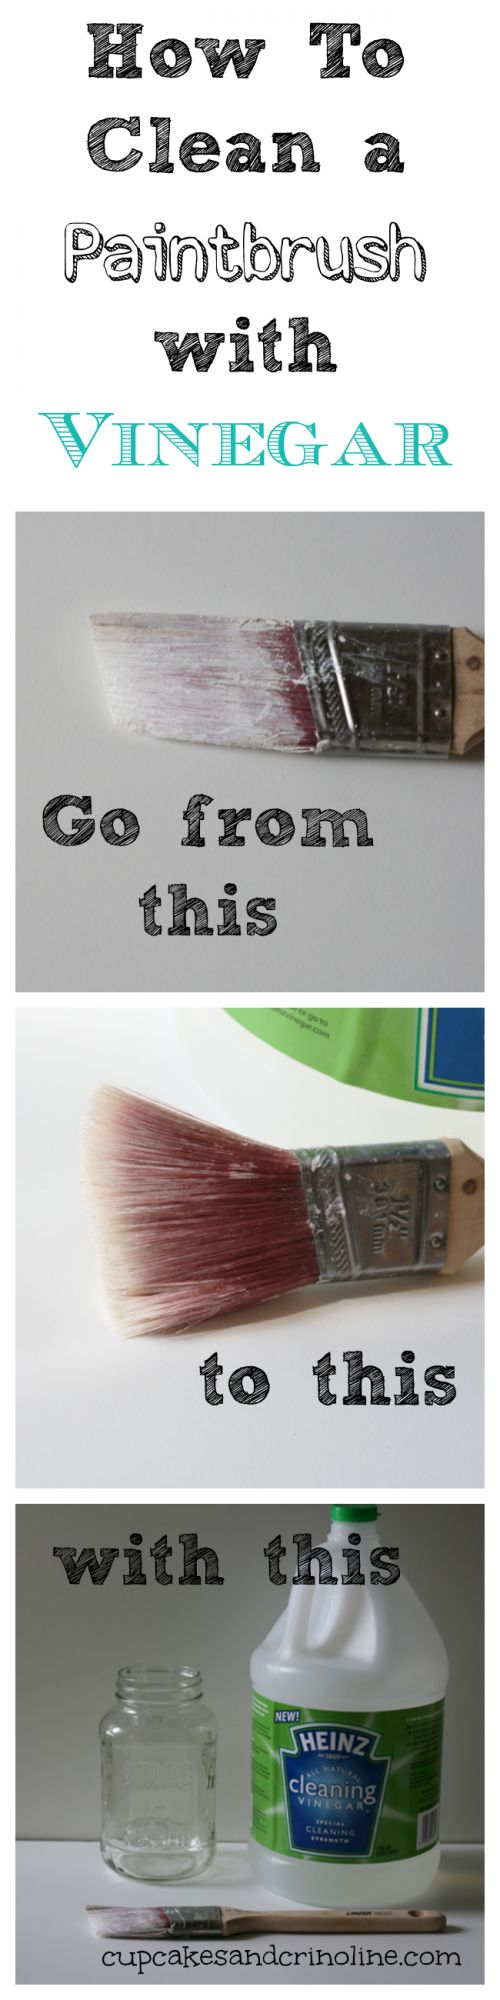 How To Clean a Dry and Crusted Paintbrush Easily with Vinegar - Cupcakes and Crinoline